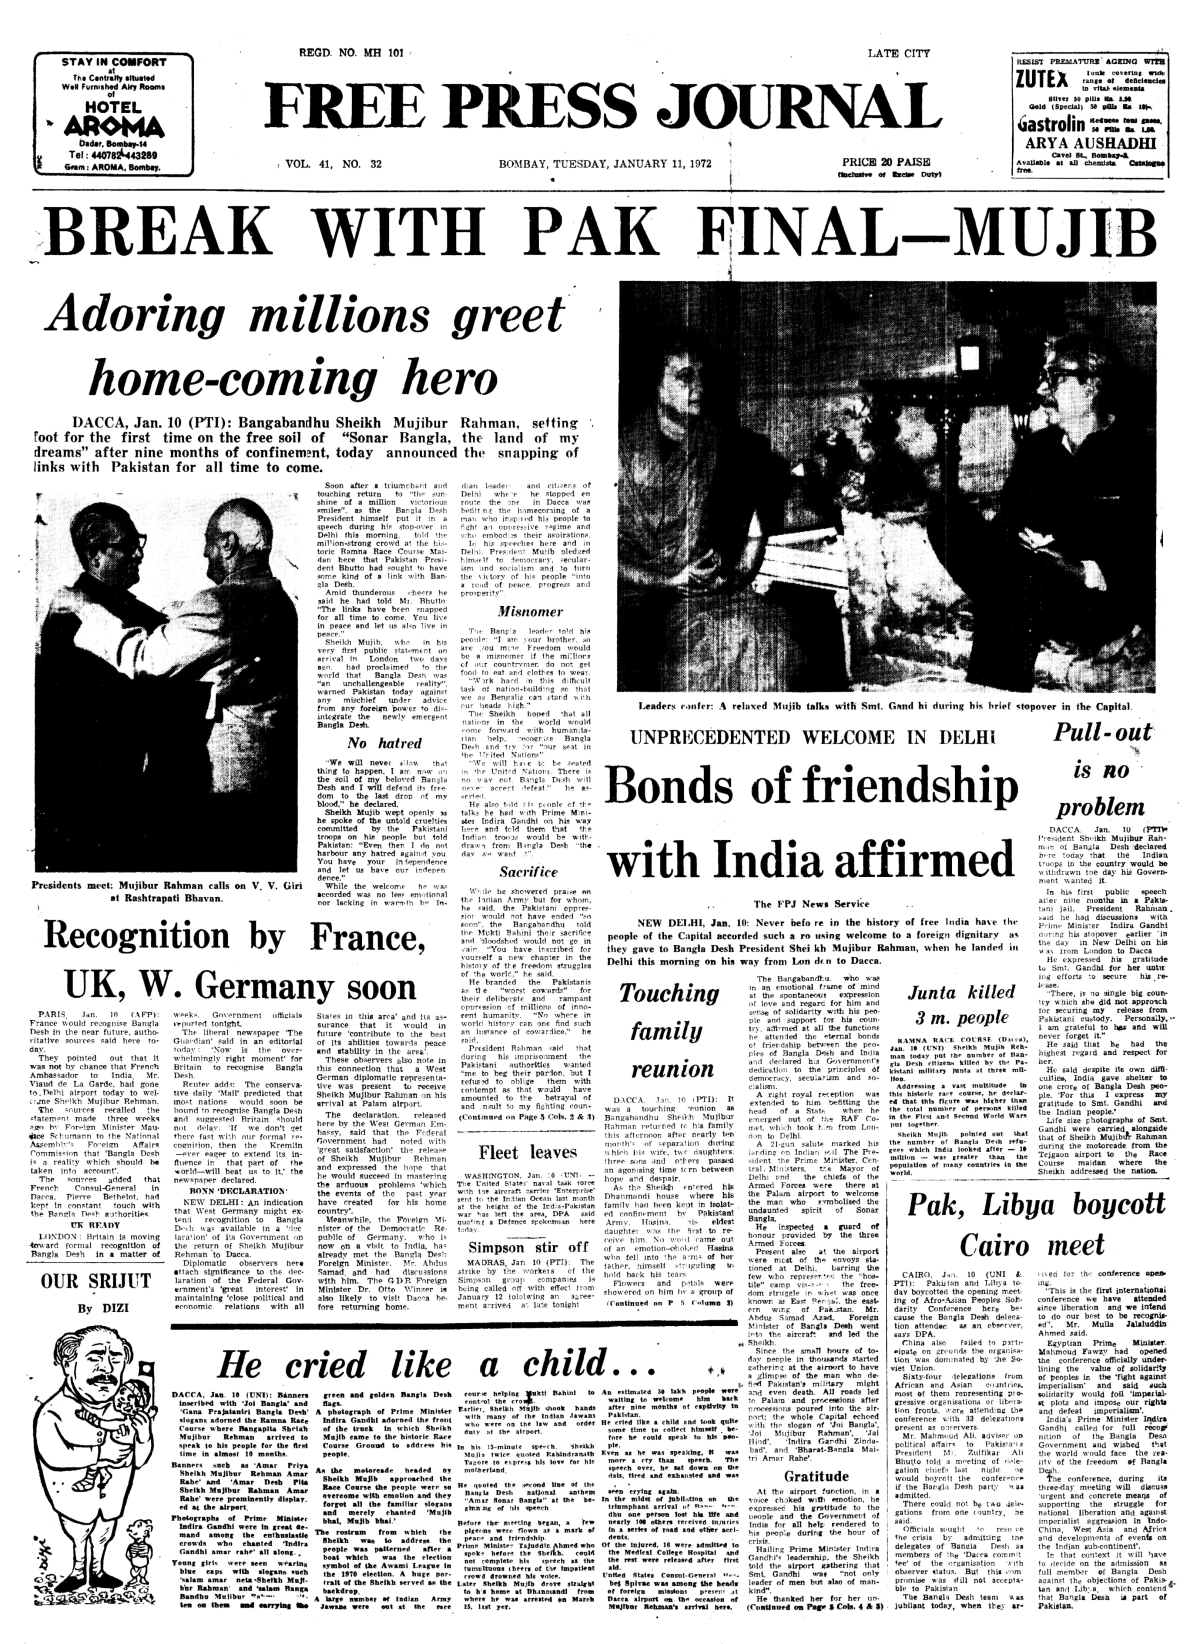 This Week in History from FPJ Archives: Gandhiji undertakes fast unto death, riots break out in Calcutta and more